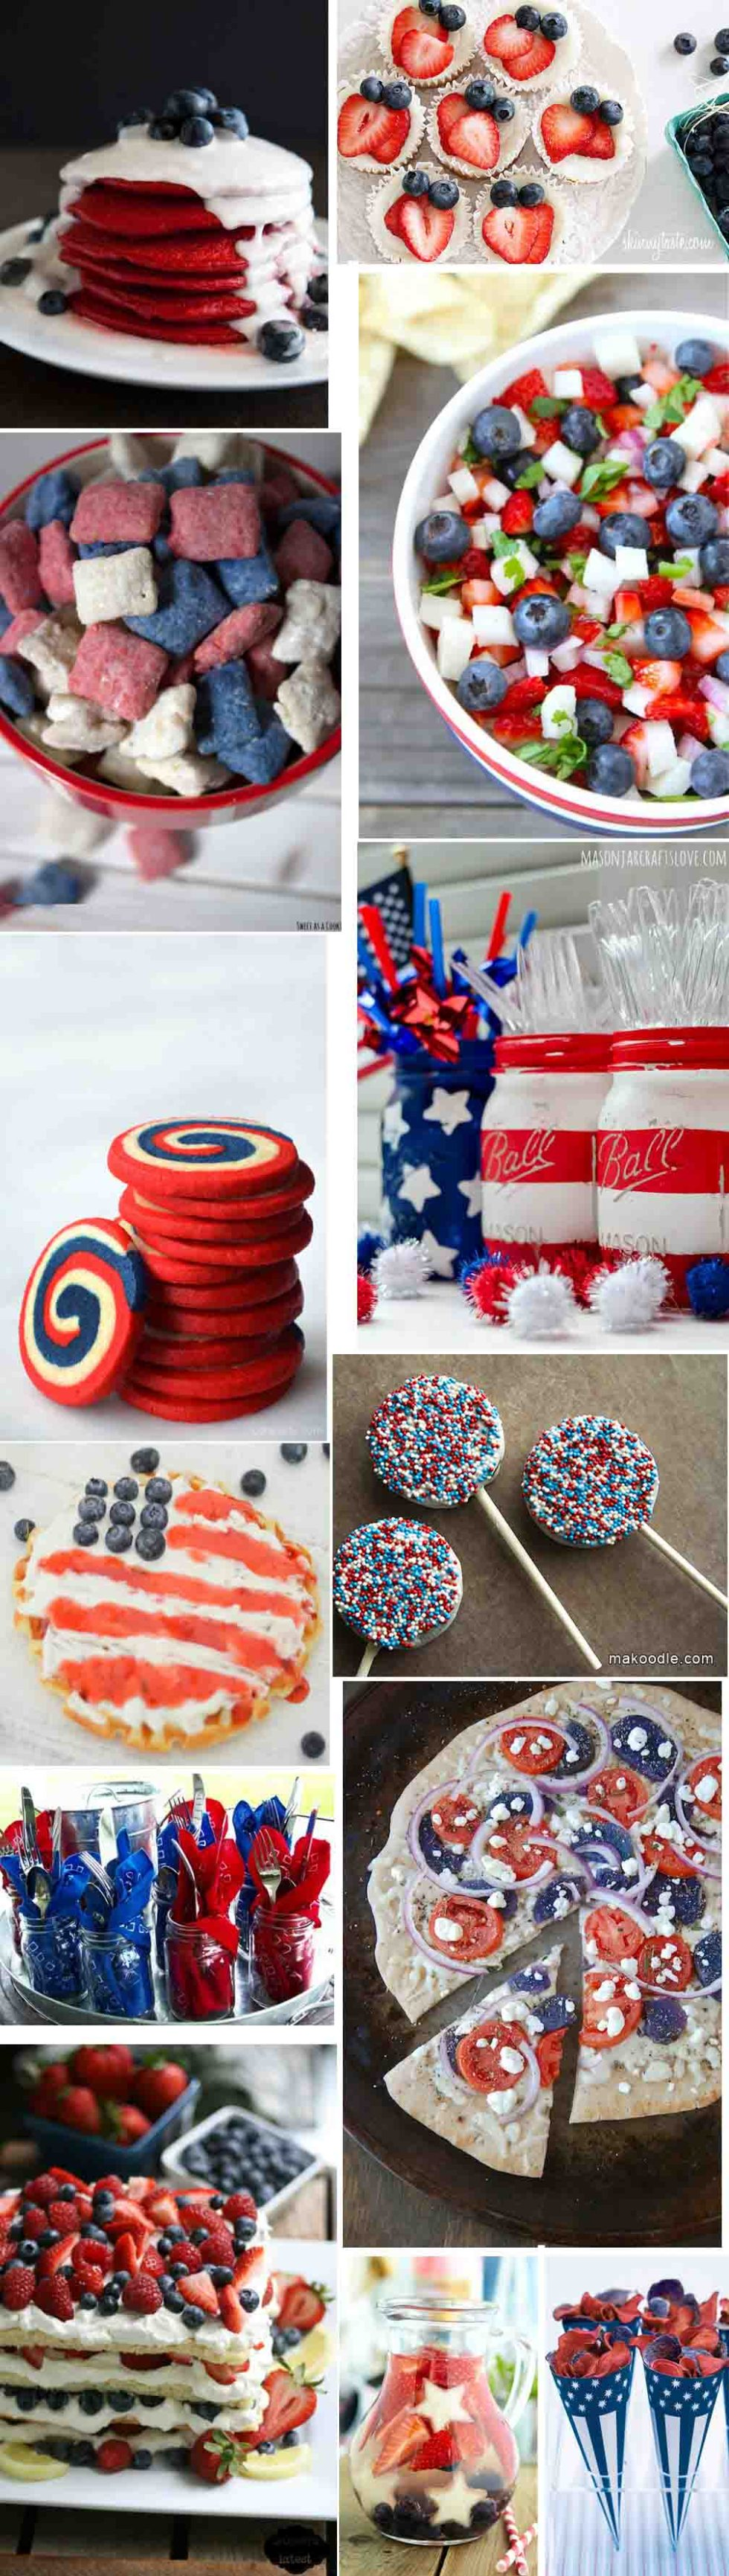 Red, White, + Blue Patriotic Food + Decor